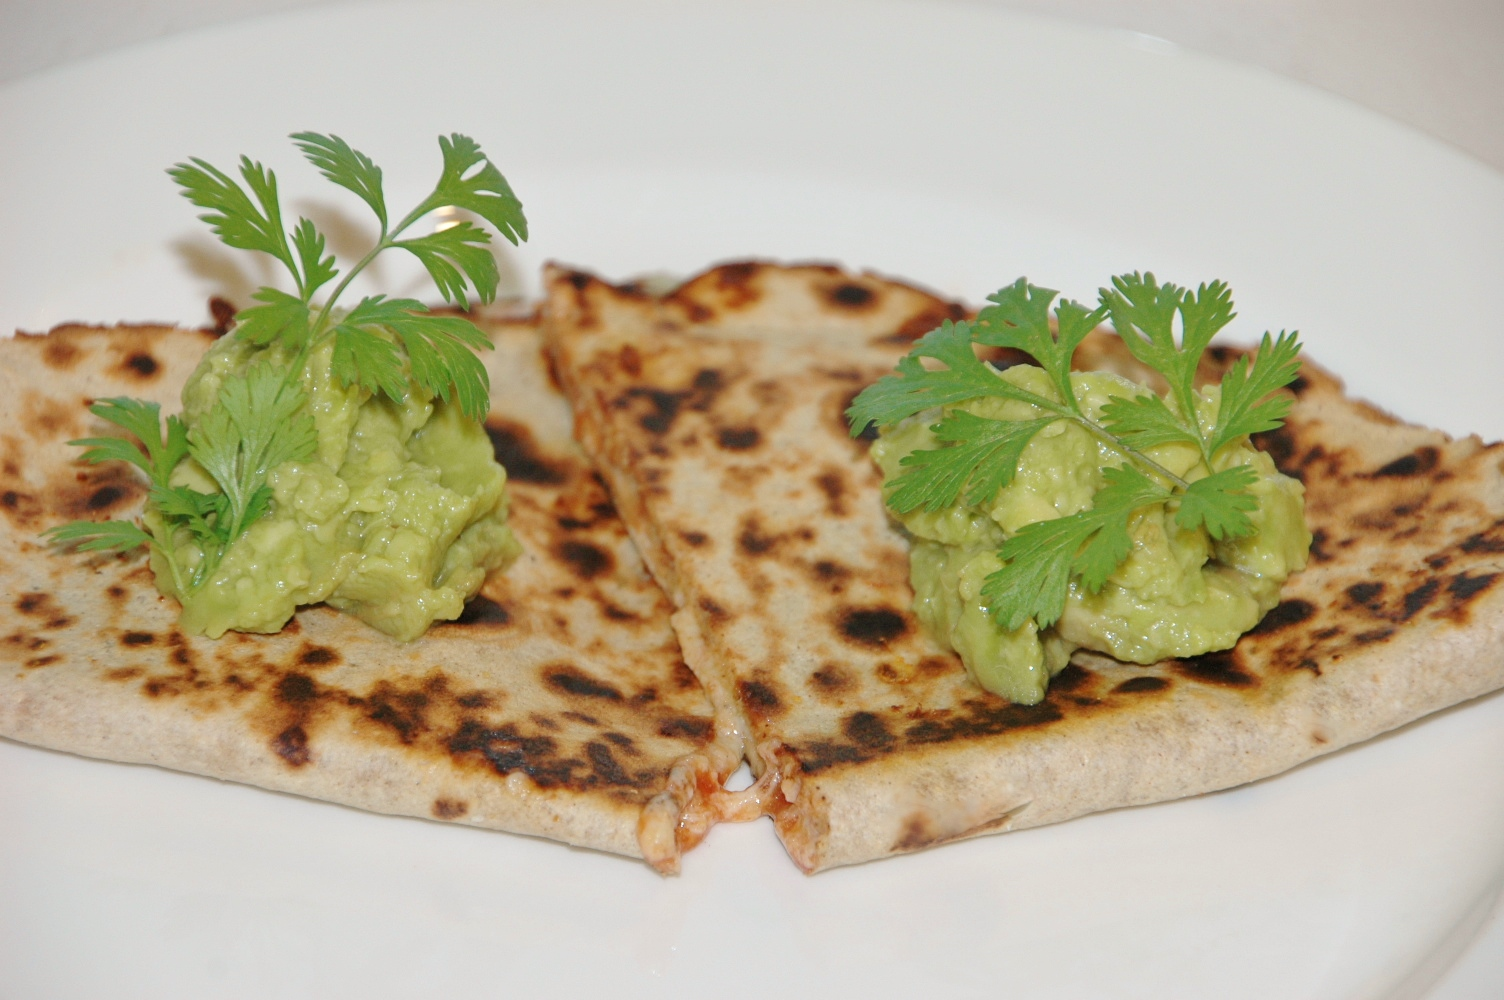 Cheese Quesadillas with Tomato Salsa and Guacamole | Healthy Home Cafe